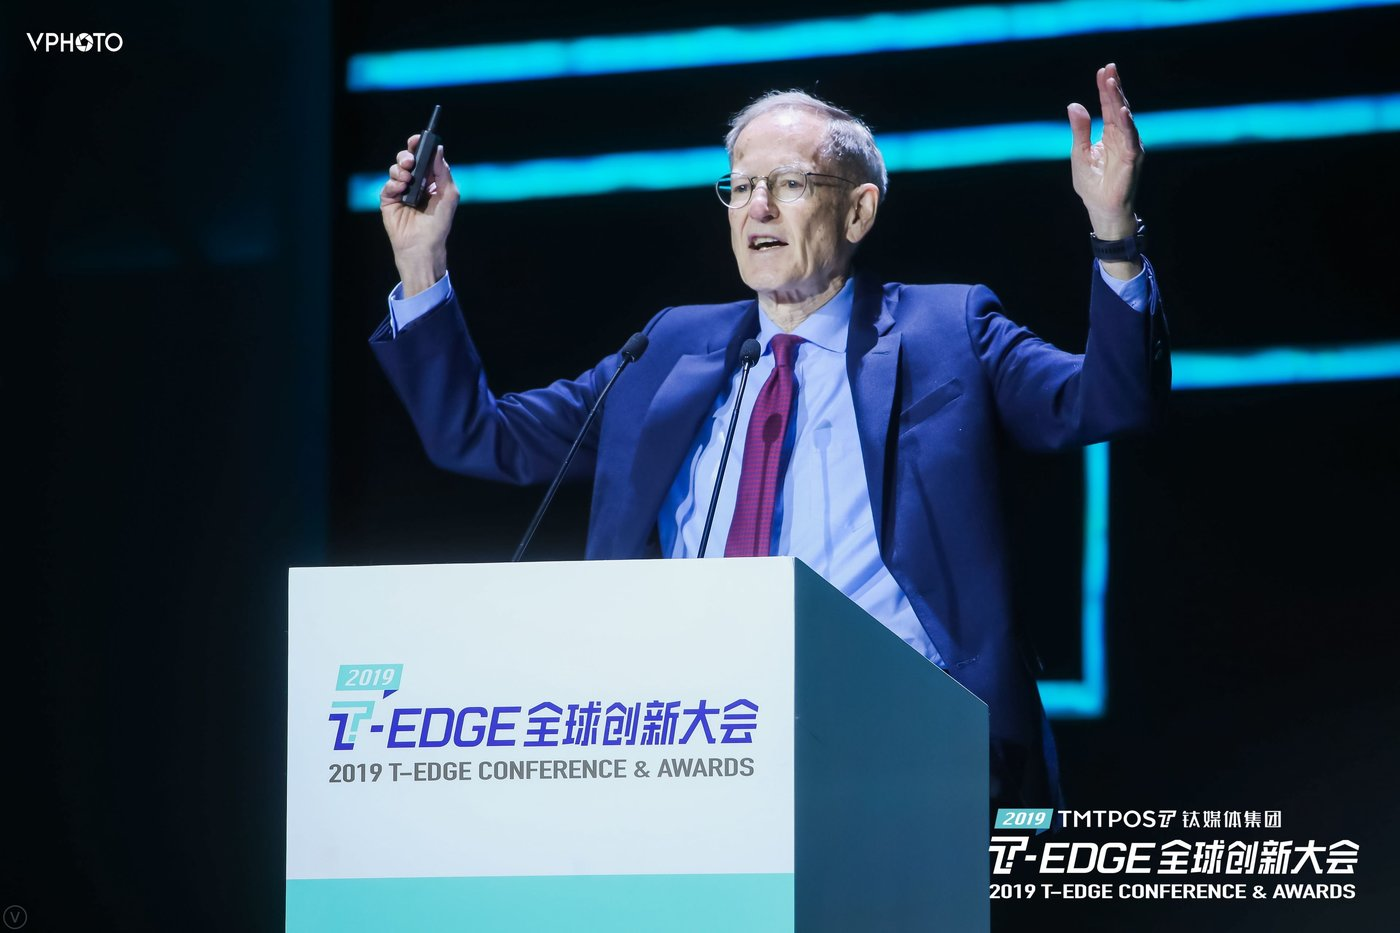 George Gilder, renowned U.S. economist and futurist, speaking at T-EDGE 2019